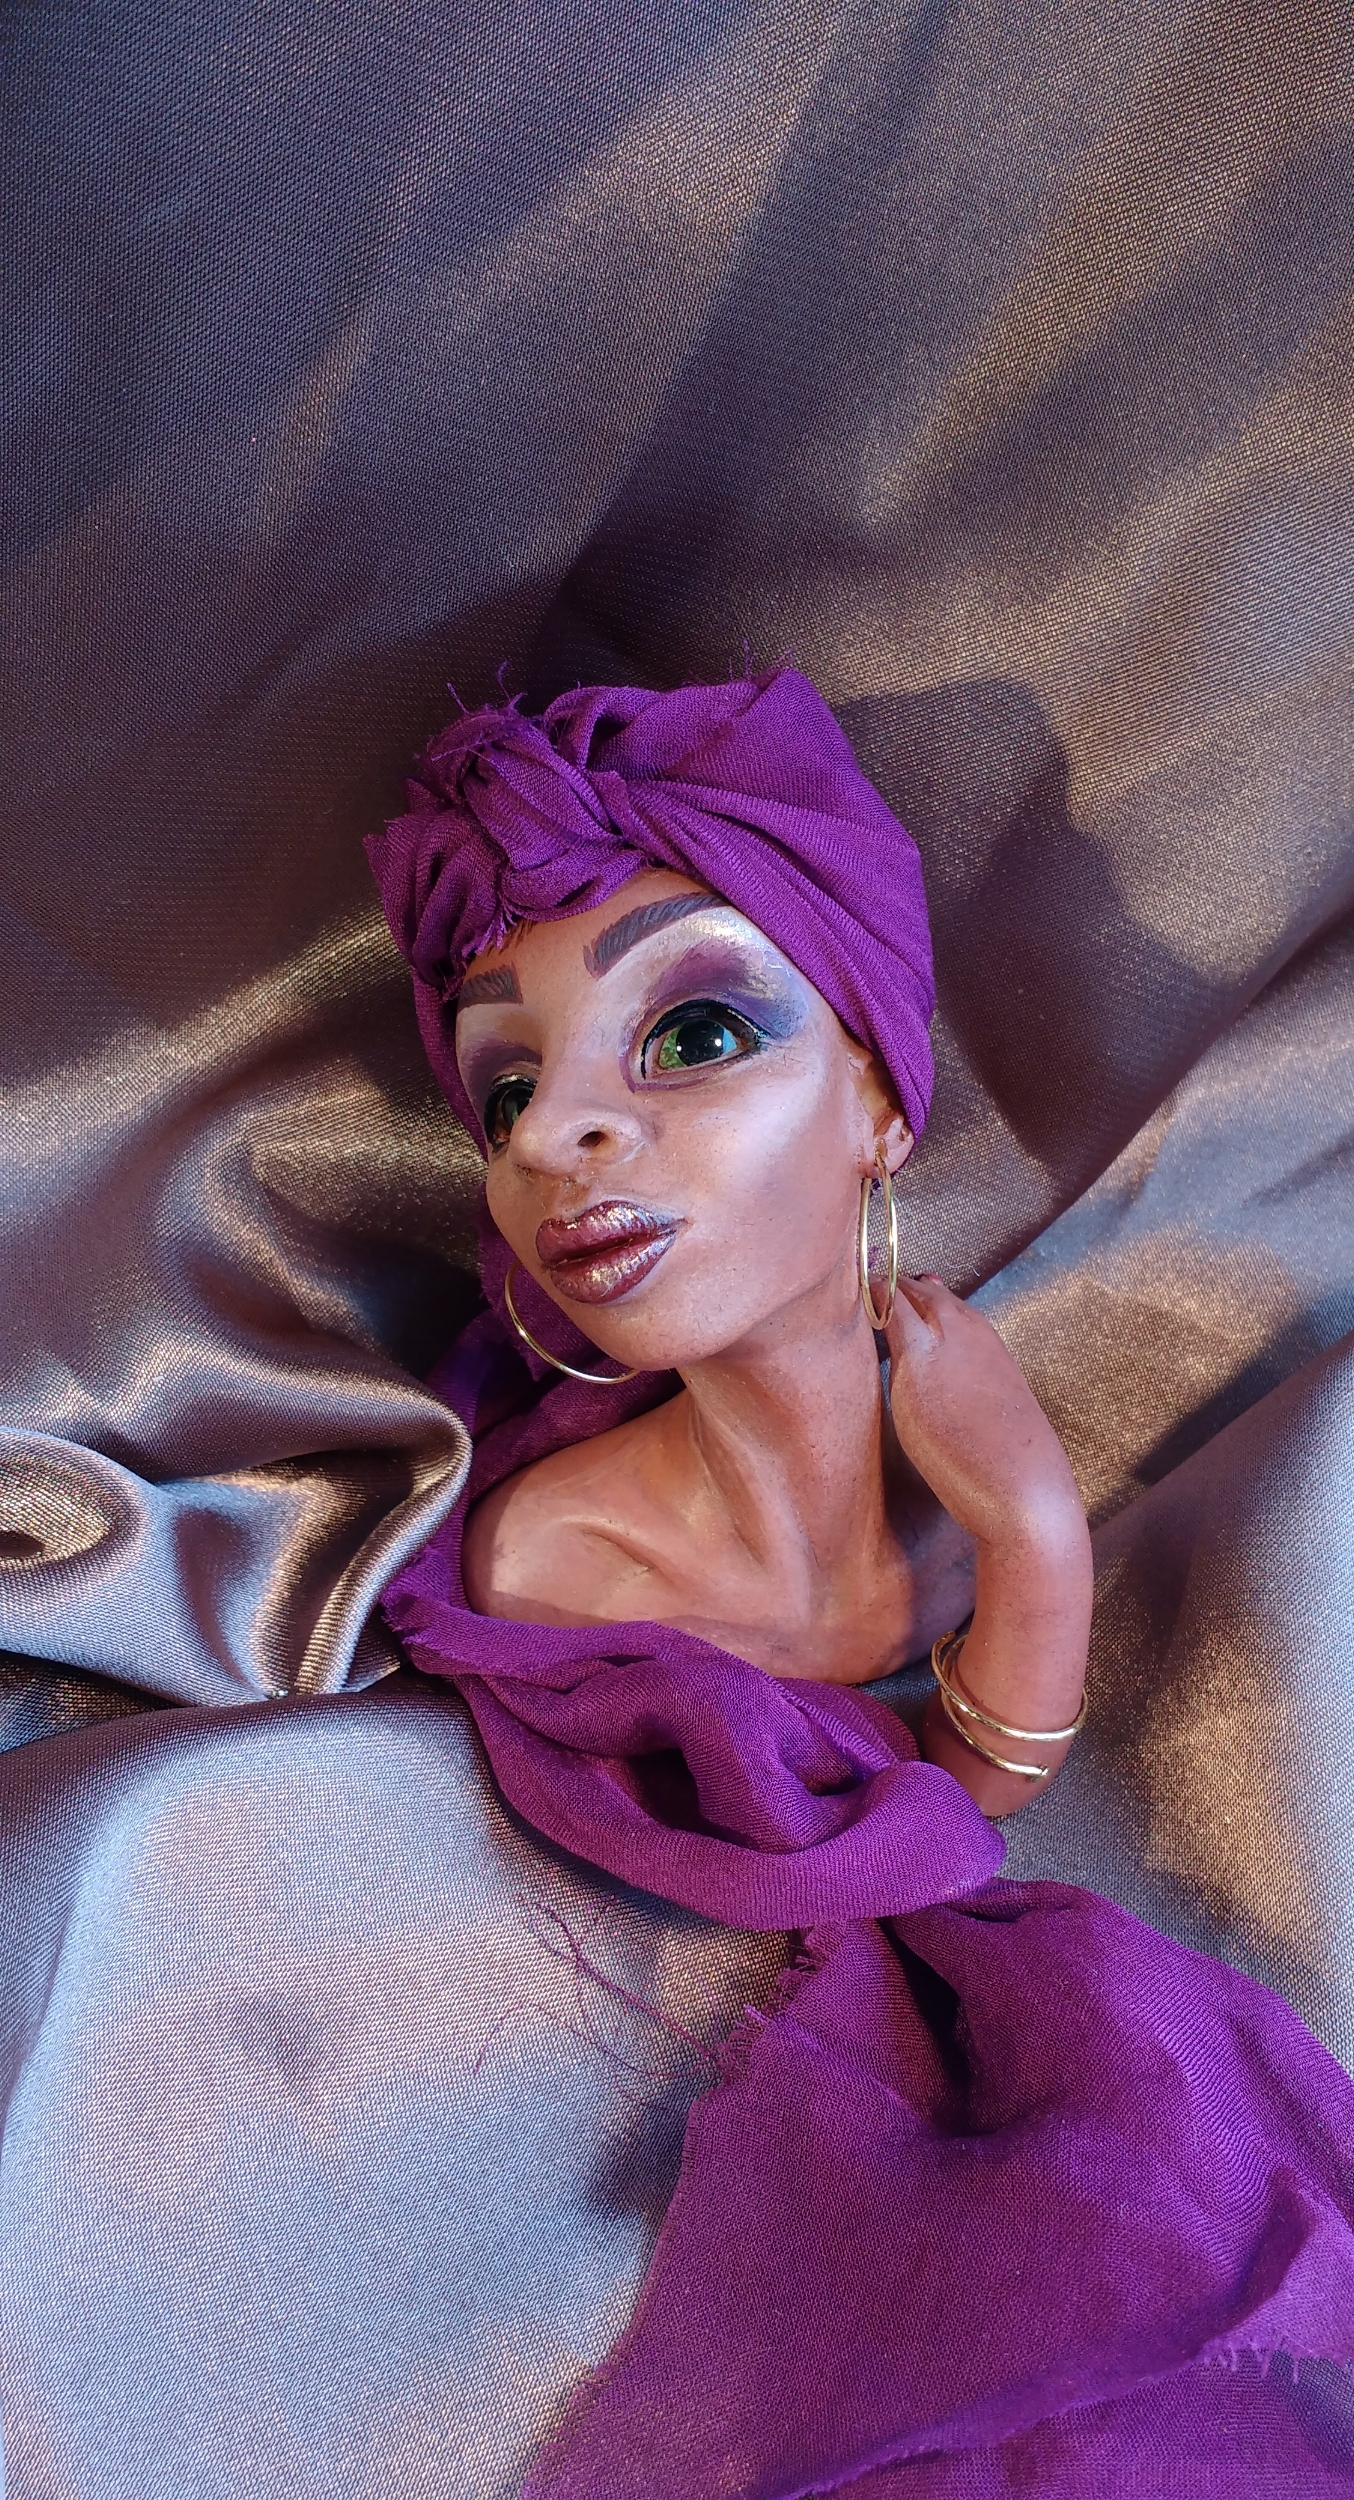 Drag Queen with headscarf